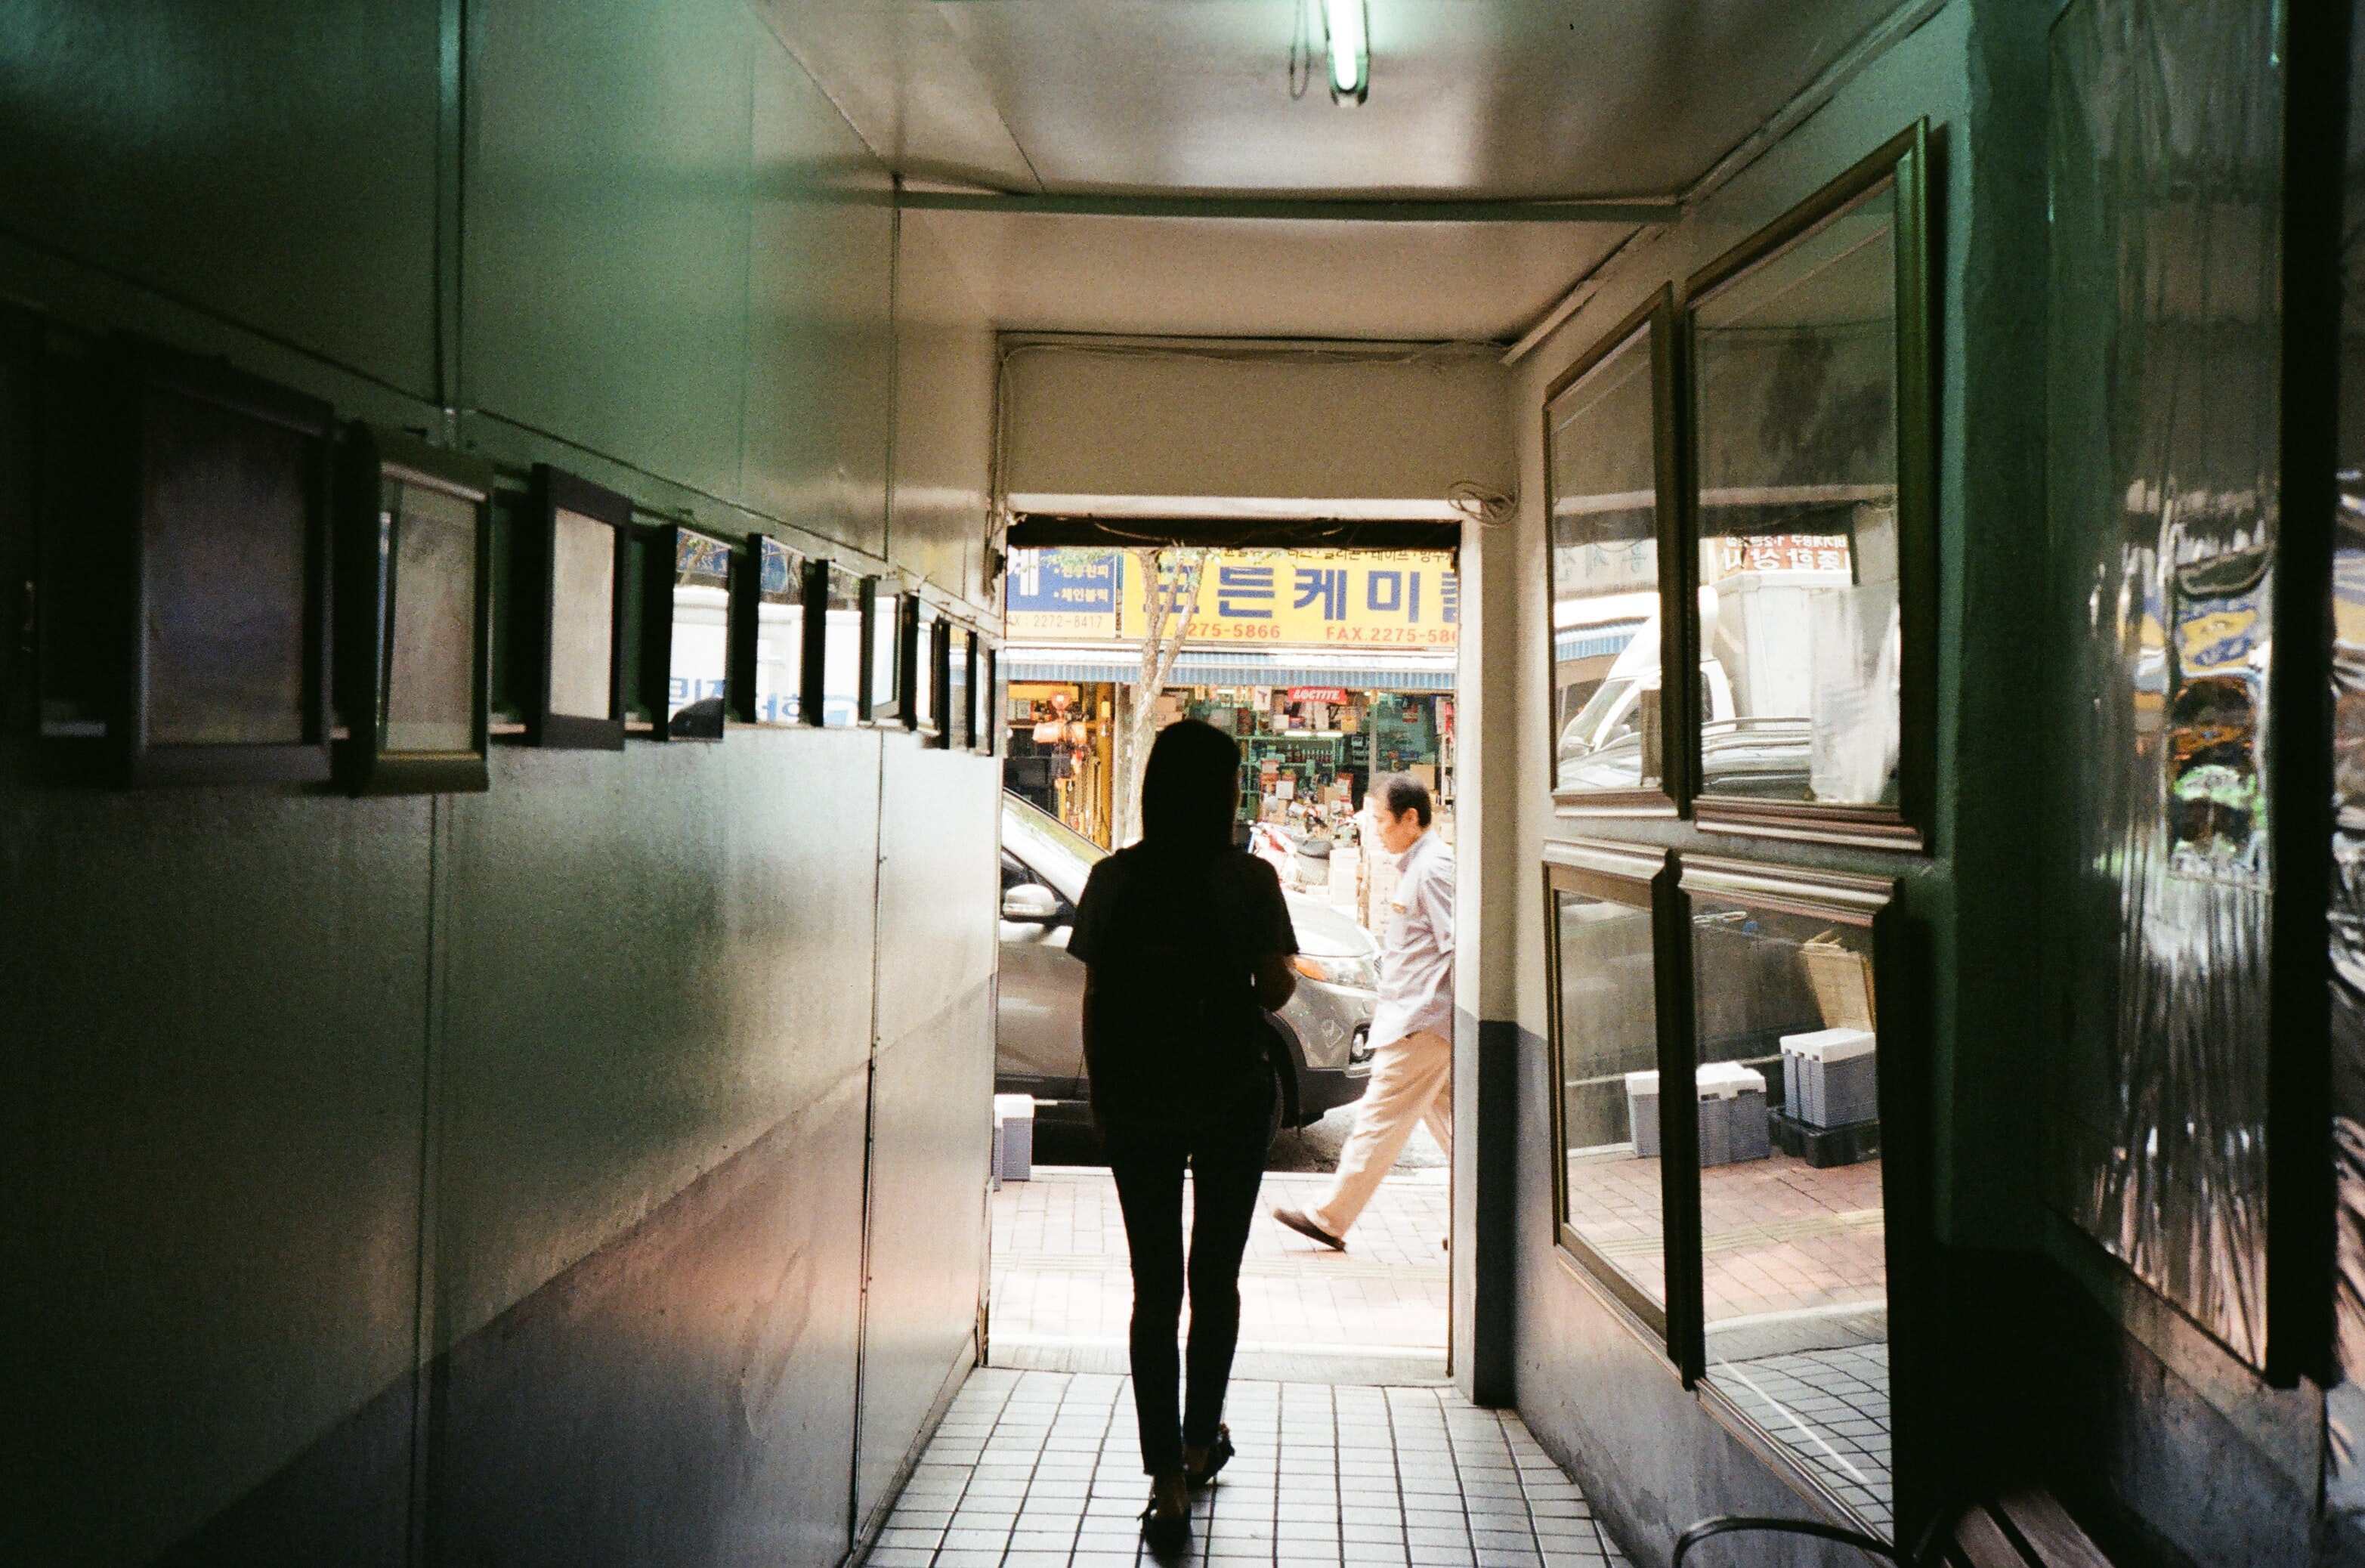 silhouette of a woman walking at the corridor